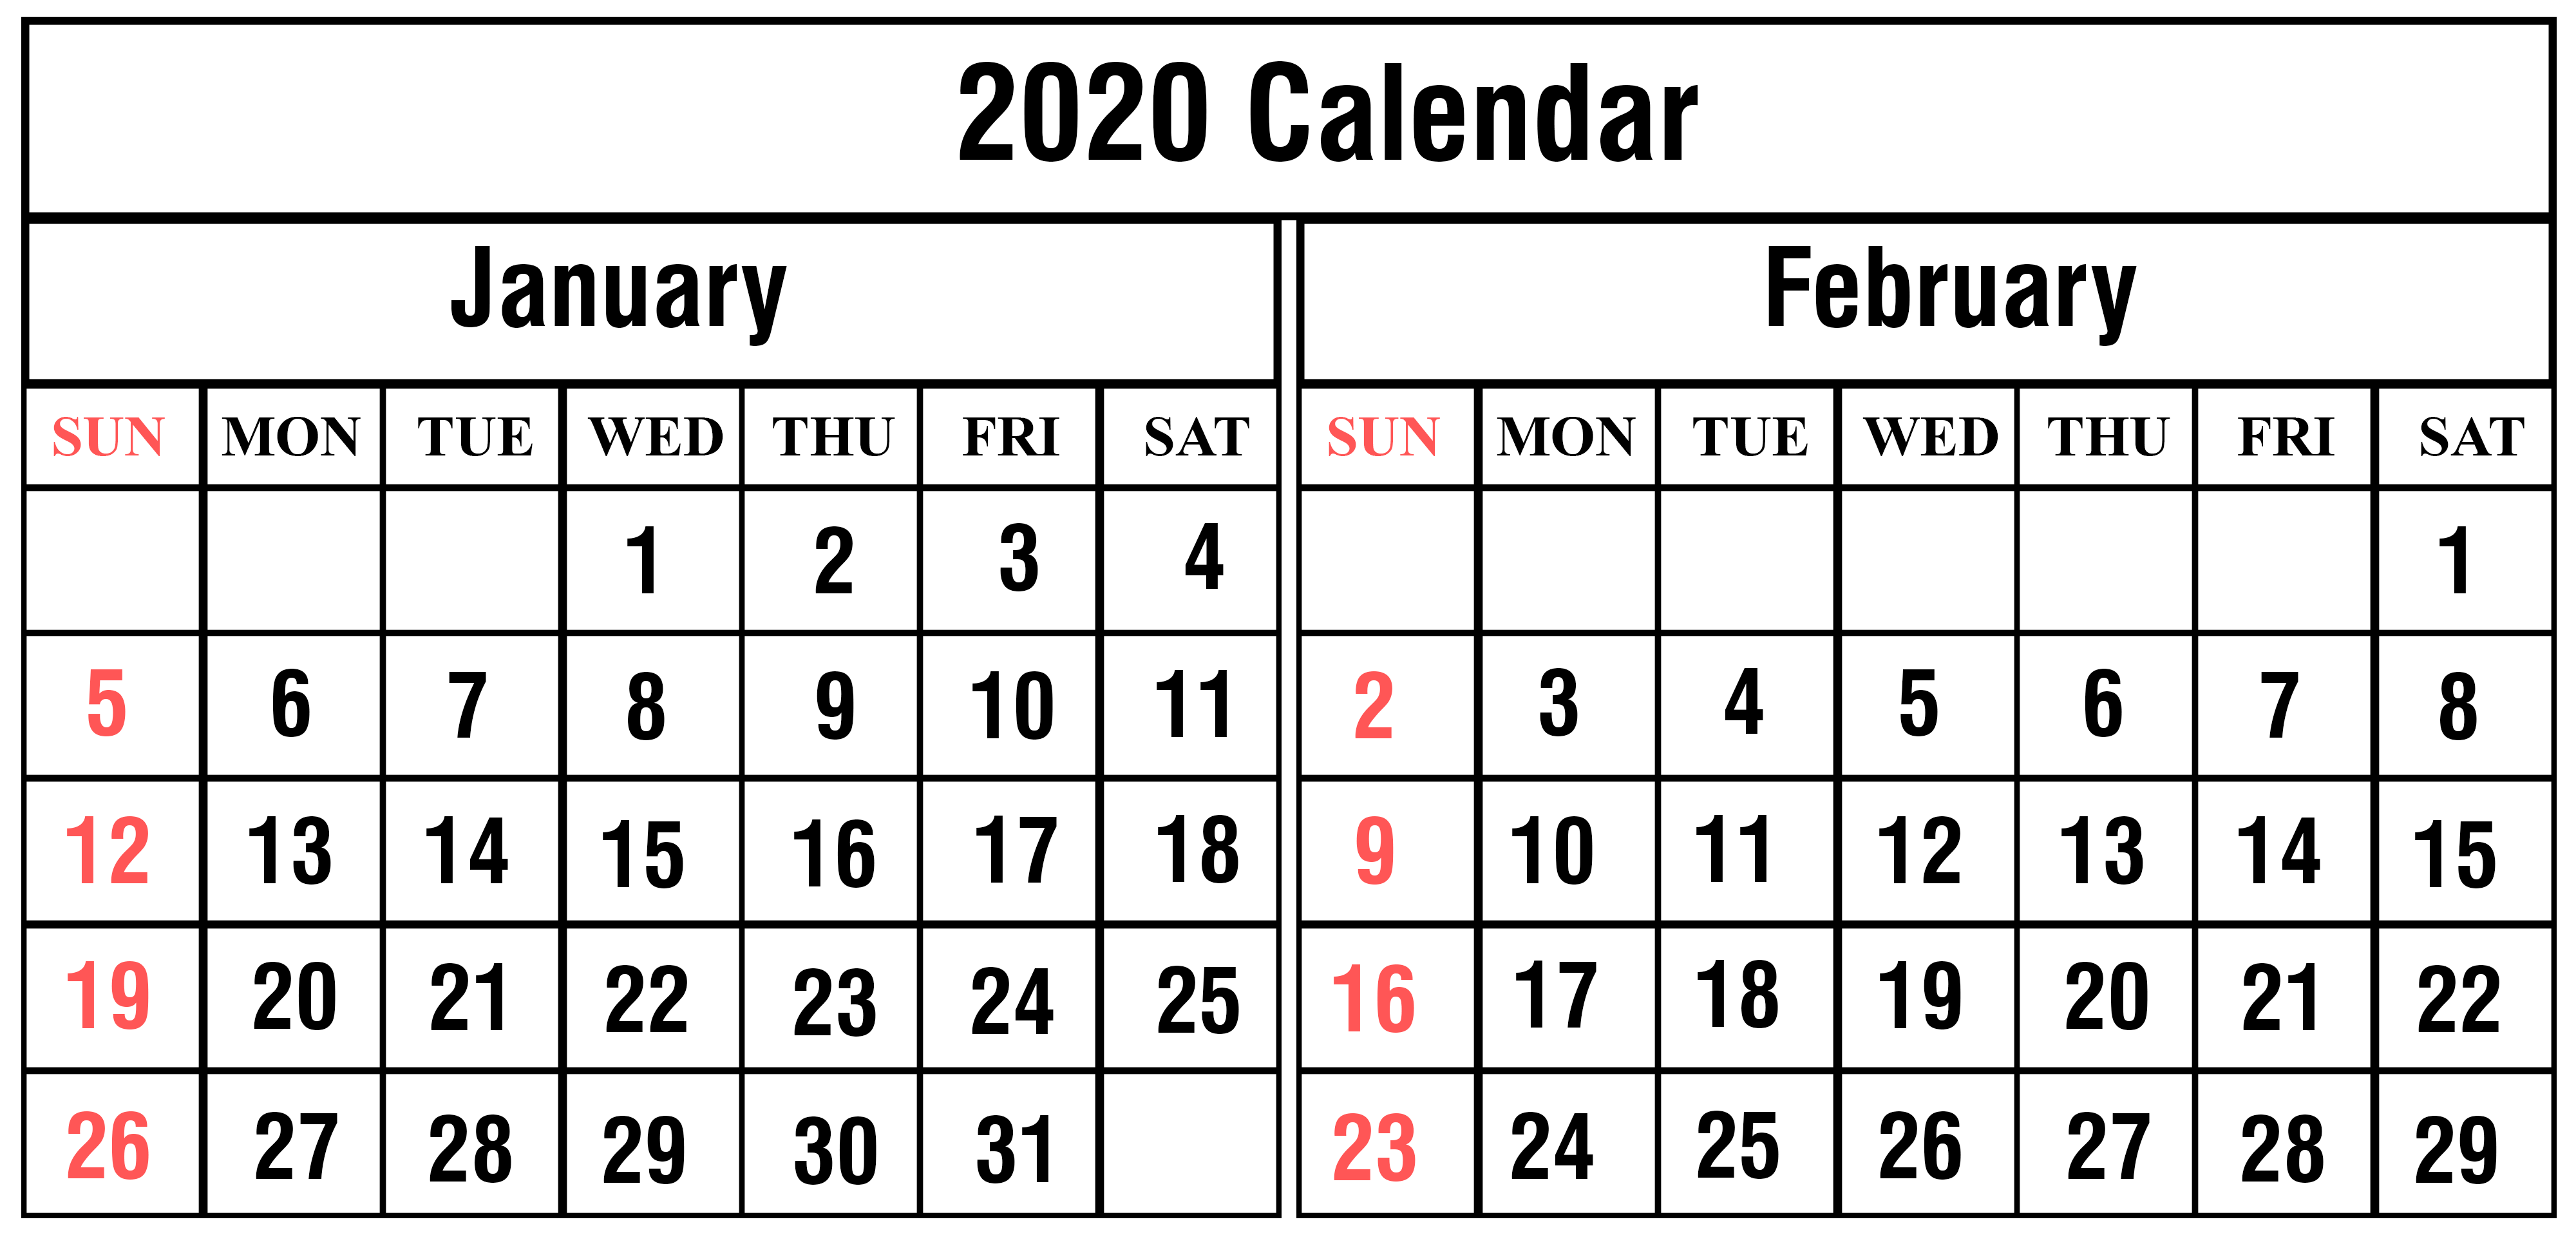 picture about Printable Feb. Calendar titled January February 2020 Calendar Printable Templates